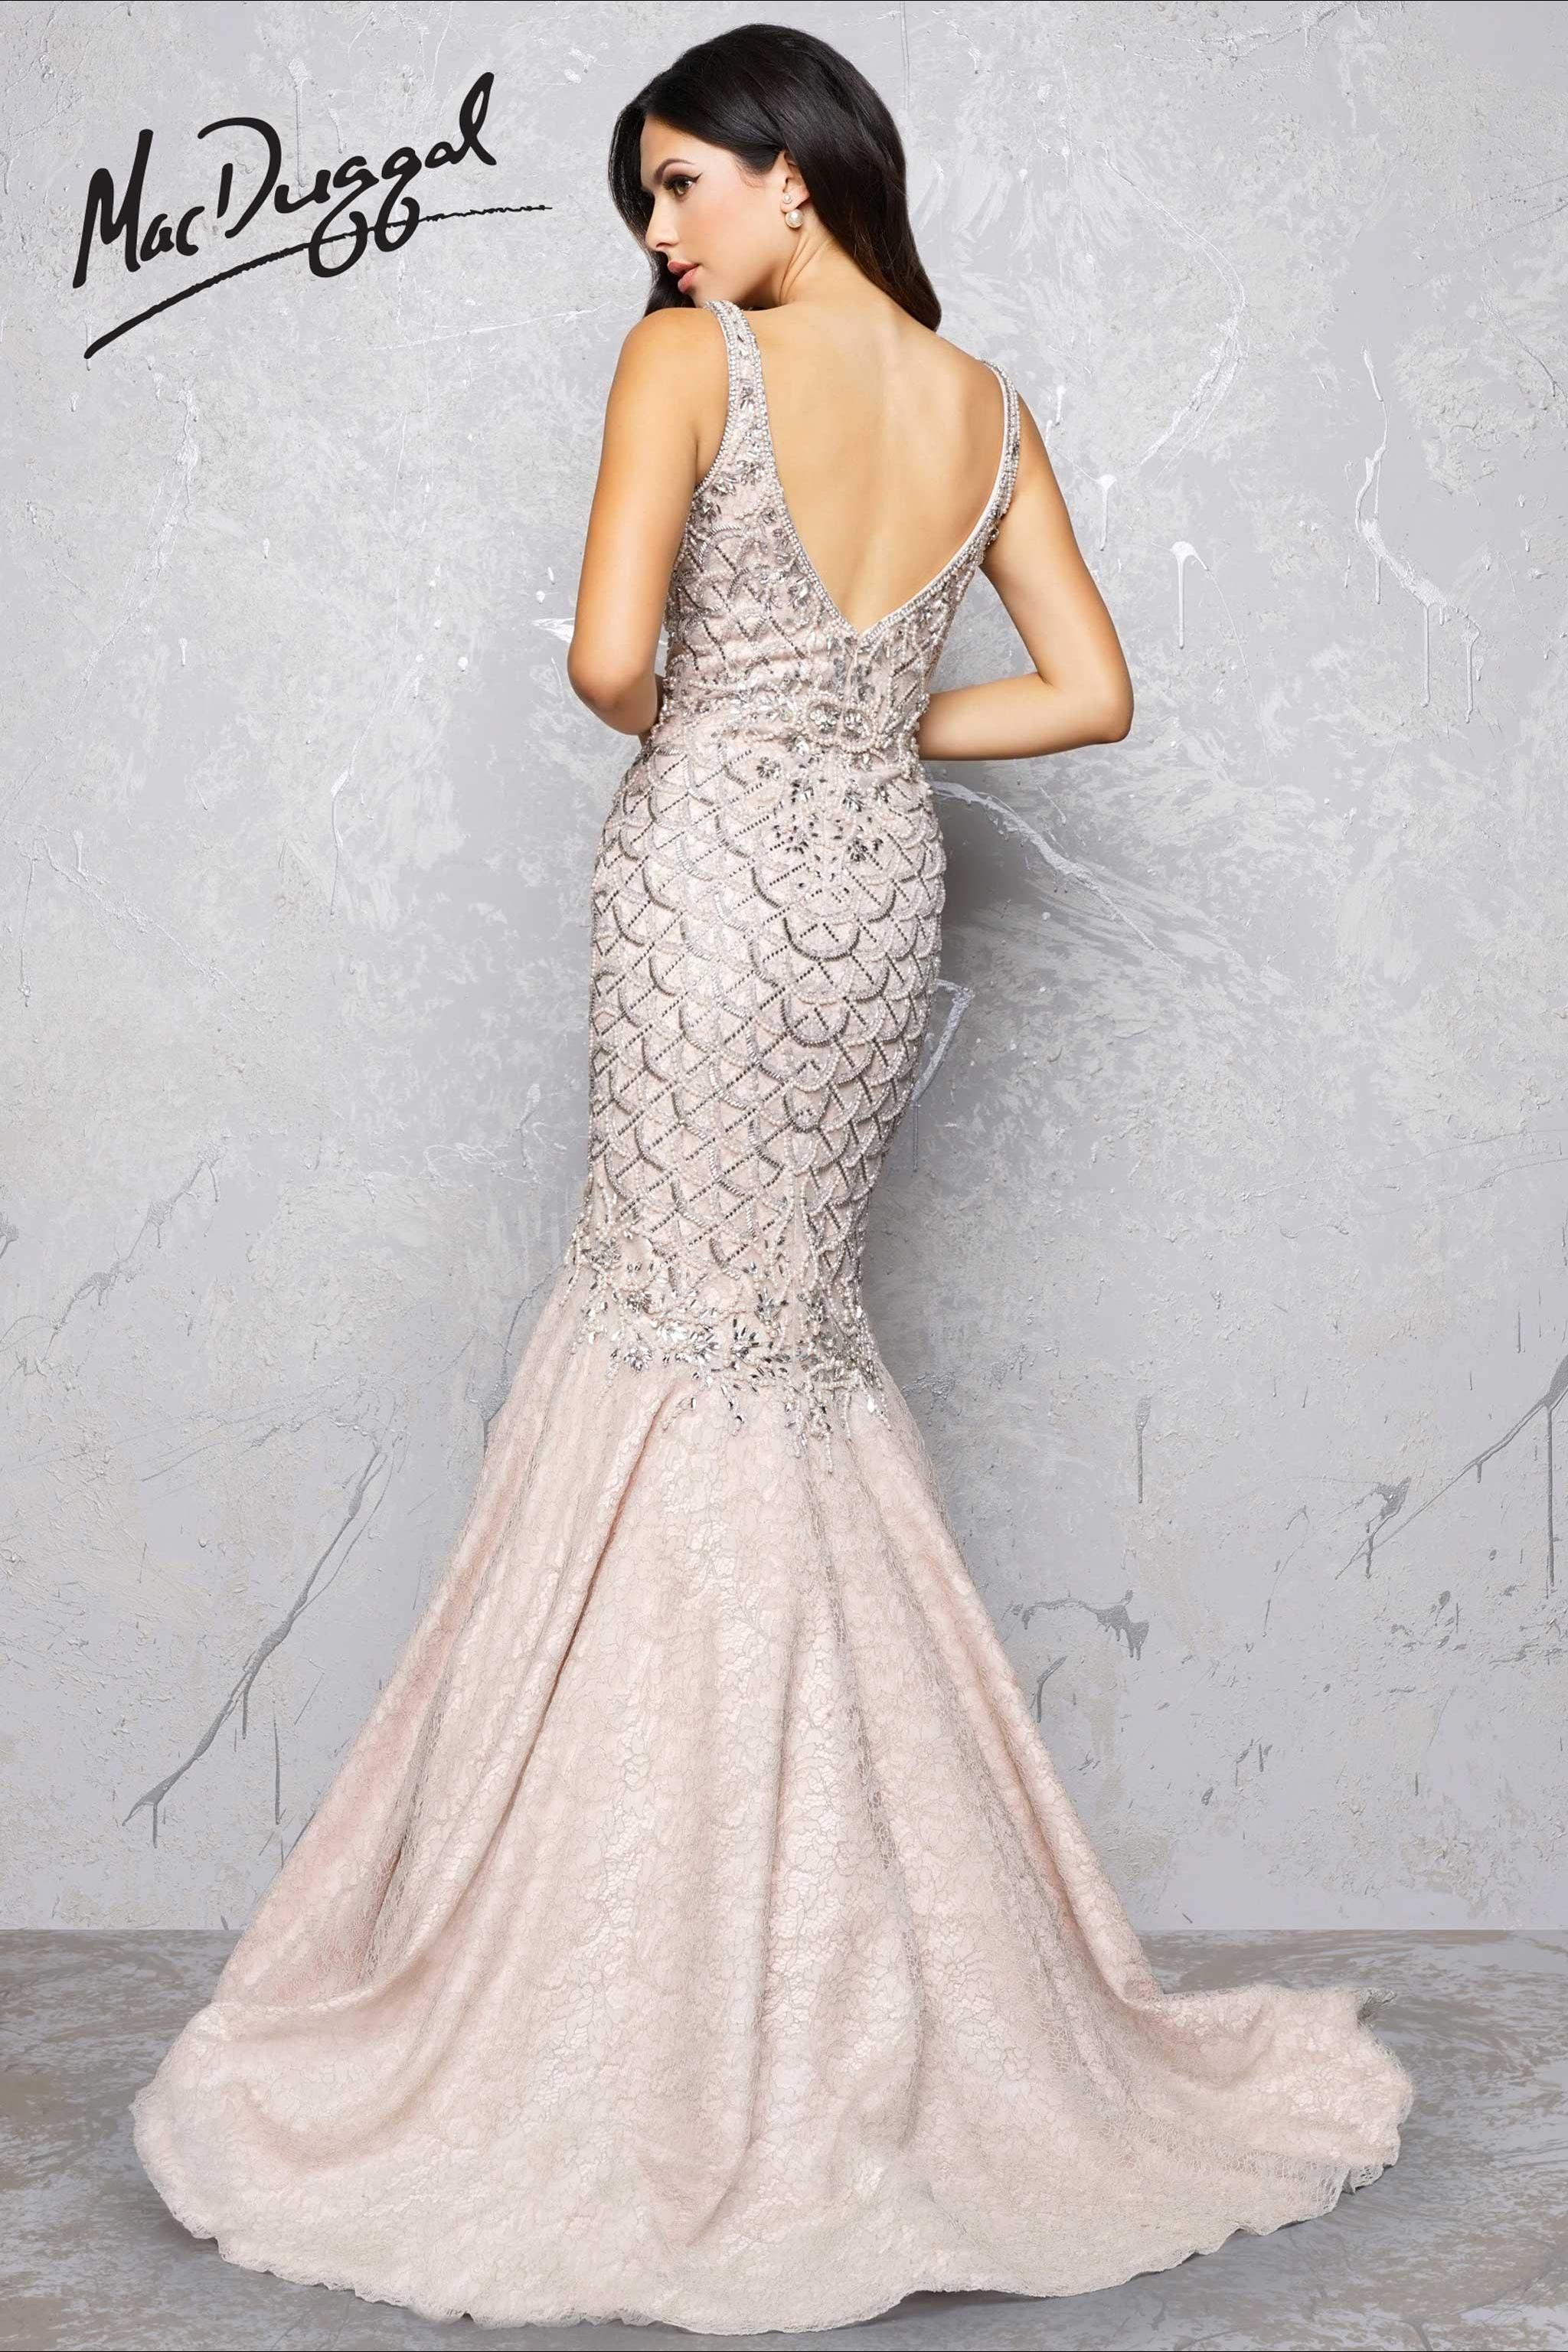 79077D | Mac Duggal | Shoes/Fashion | Pinterest | Macs, Couture and ...